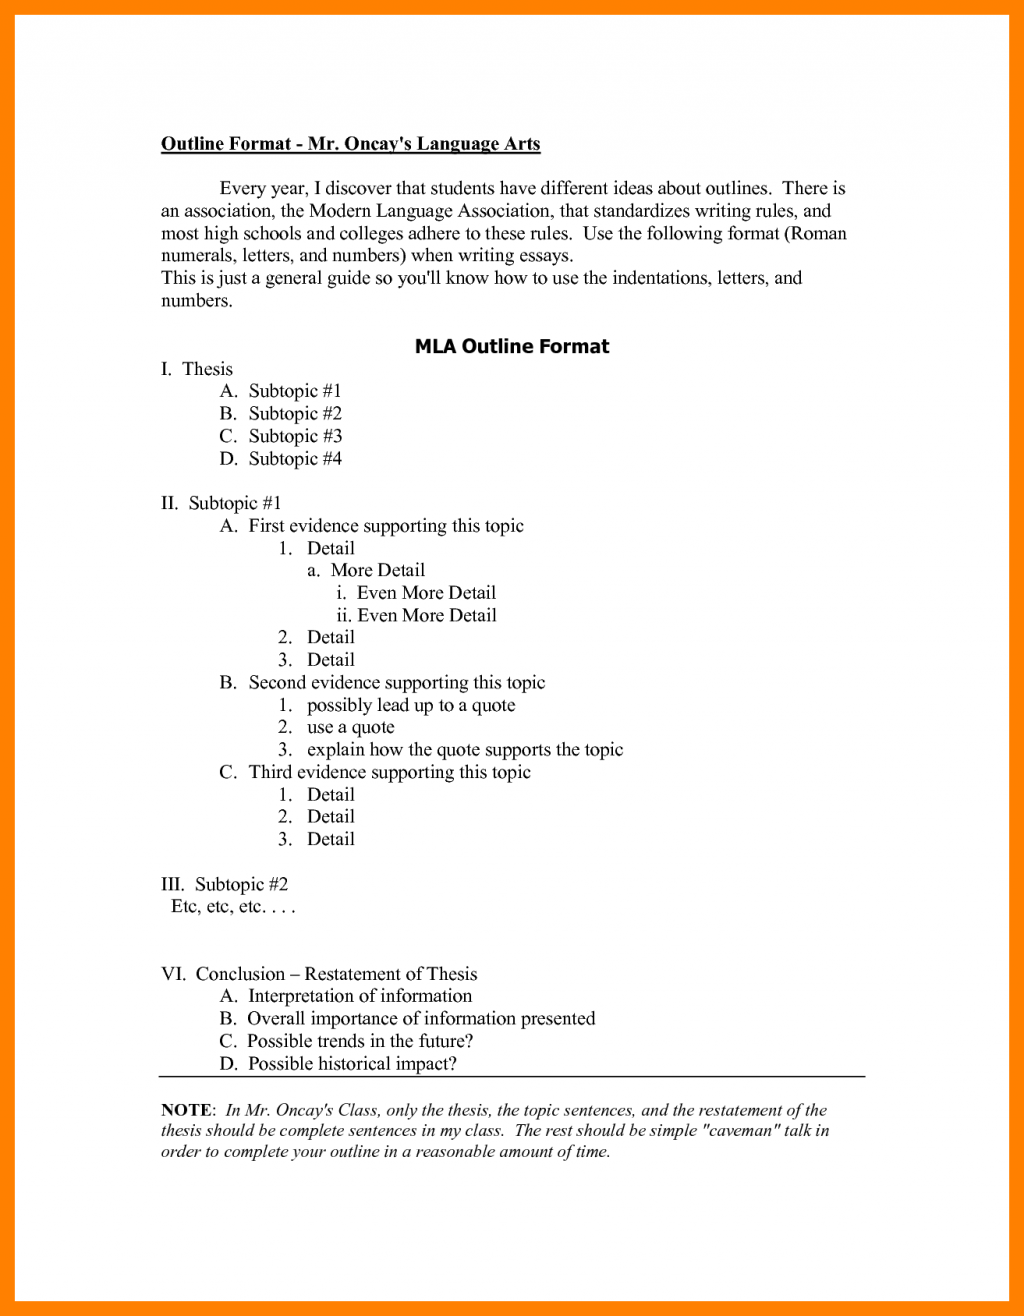 020 Research Paper 20research Example20a High School Outline Format Pear Tree Digital Citations20 1024x1316 Rare Career Sample Example Full